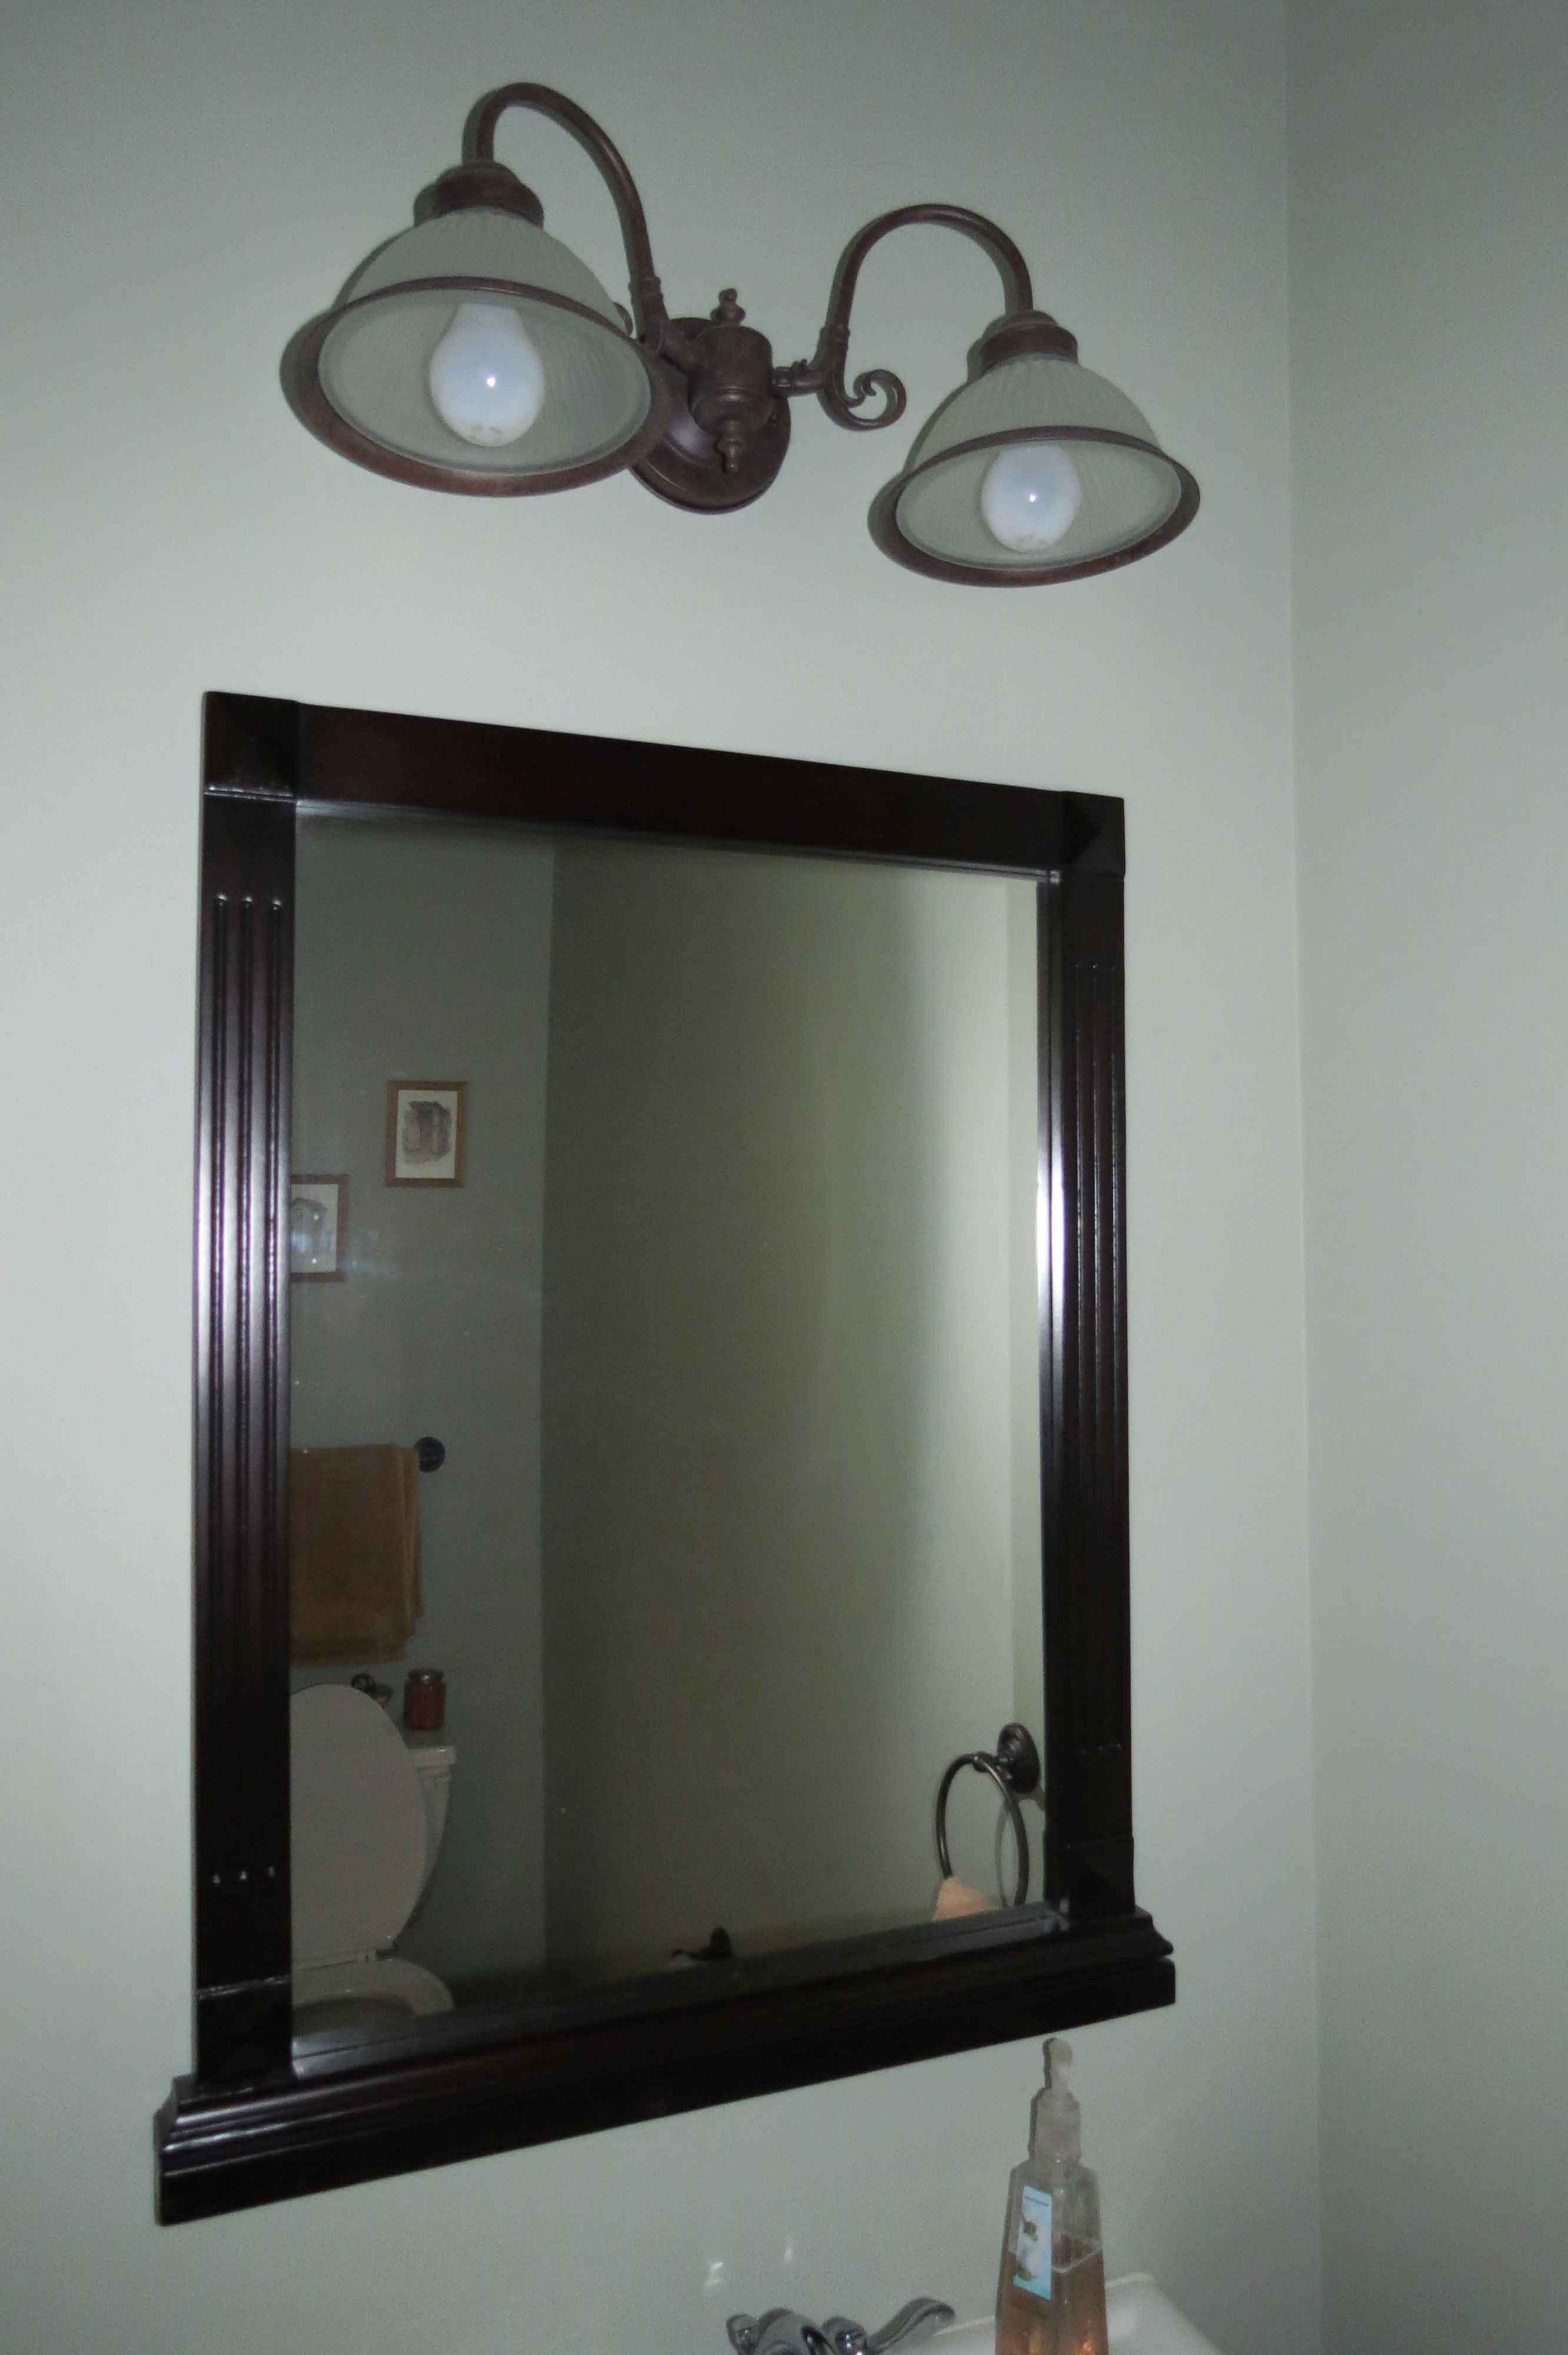 Bathroom Lighting Fixtures Louisville Ky our portfolio - past electrical work - louisville, ky : durbin